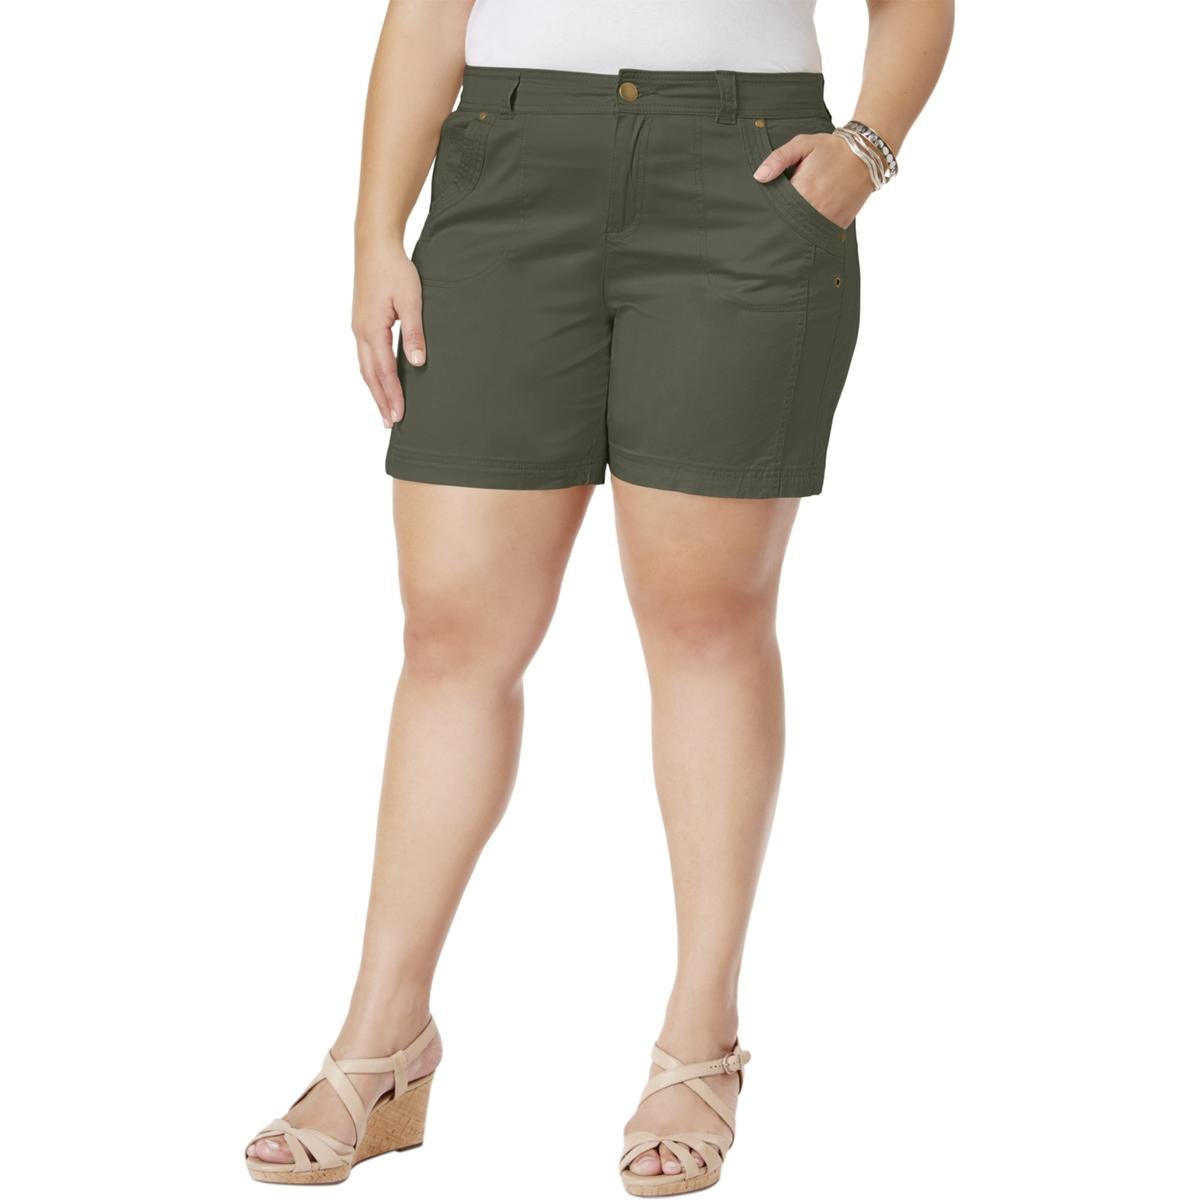 Style & Co. Womens Plus Mid-Rise Solid Casual Shorts Green 18W